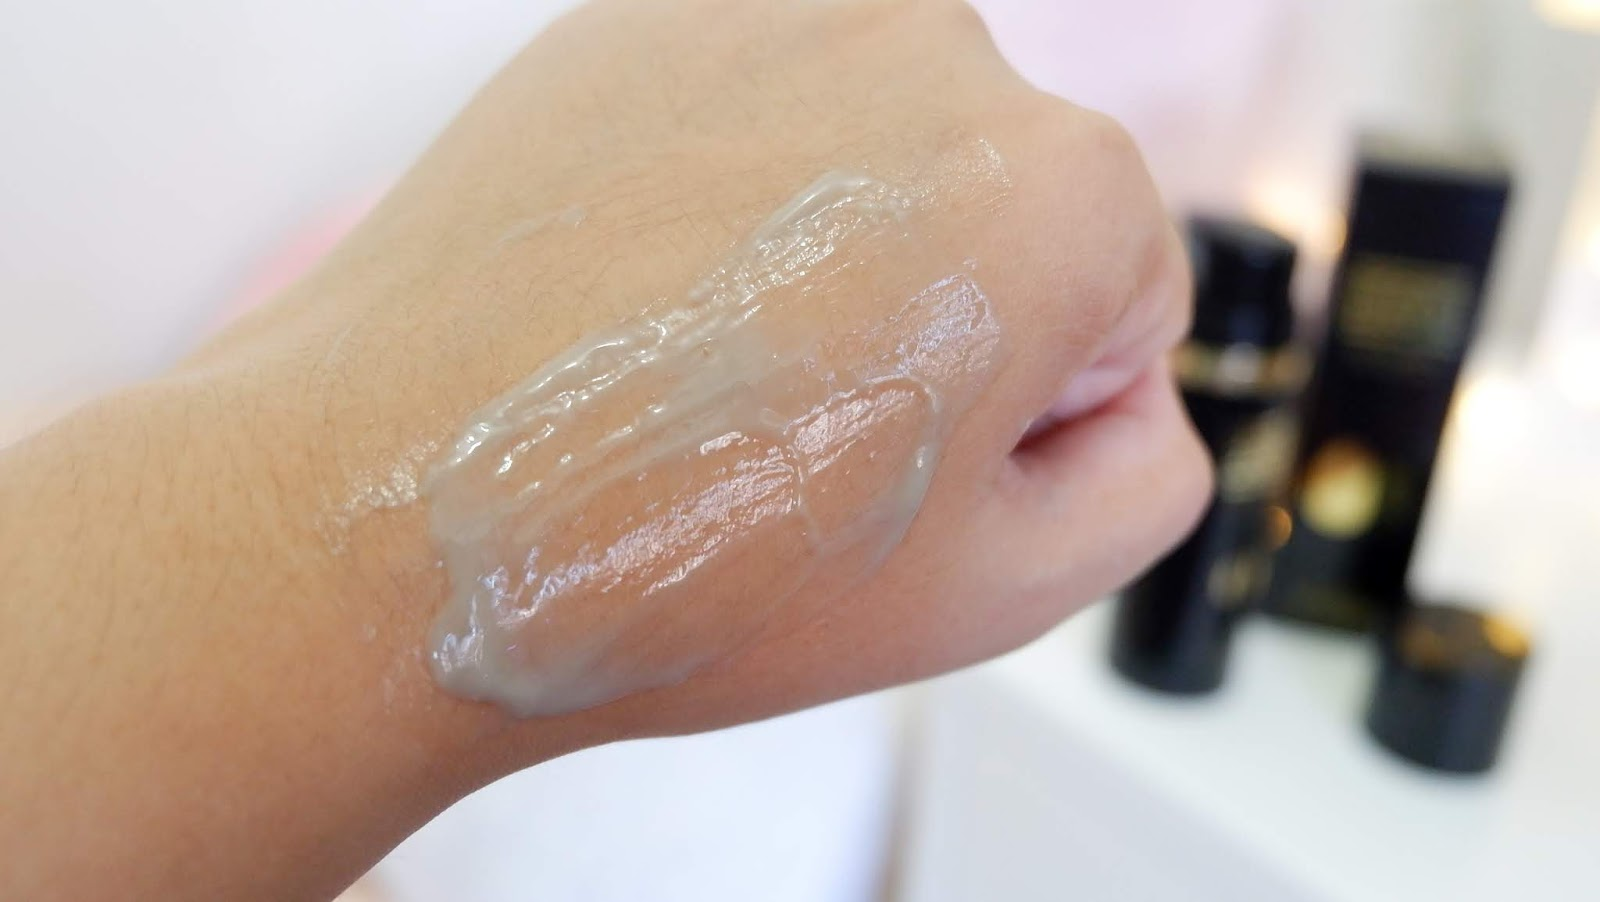 EGGRO Luxury High-Quality Face Egg Mask Review